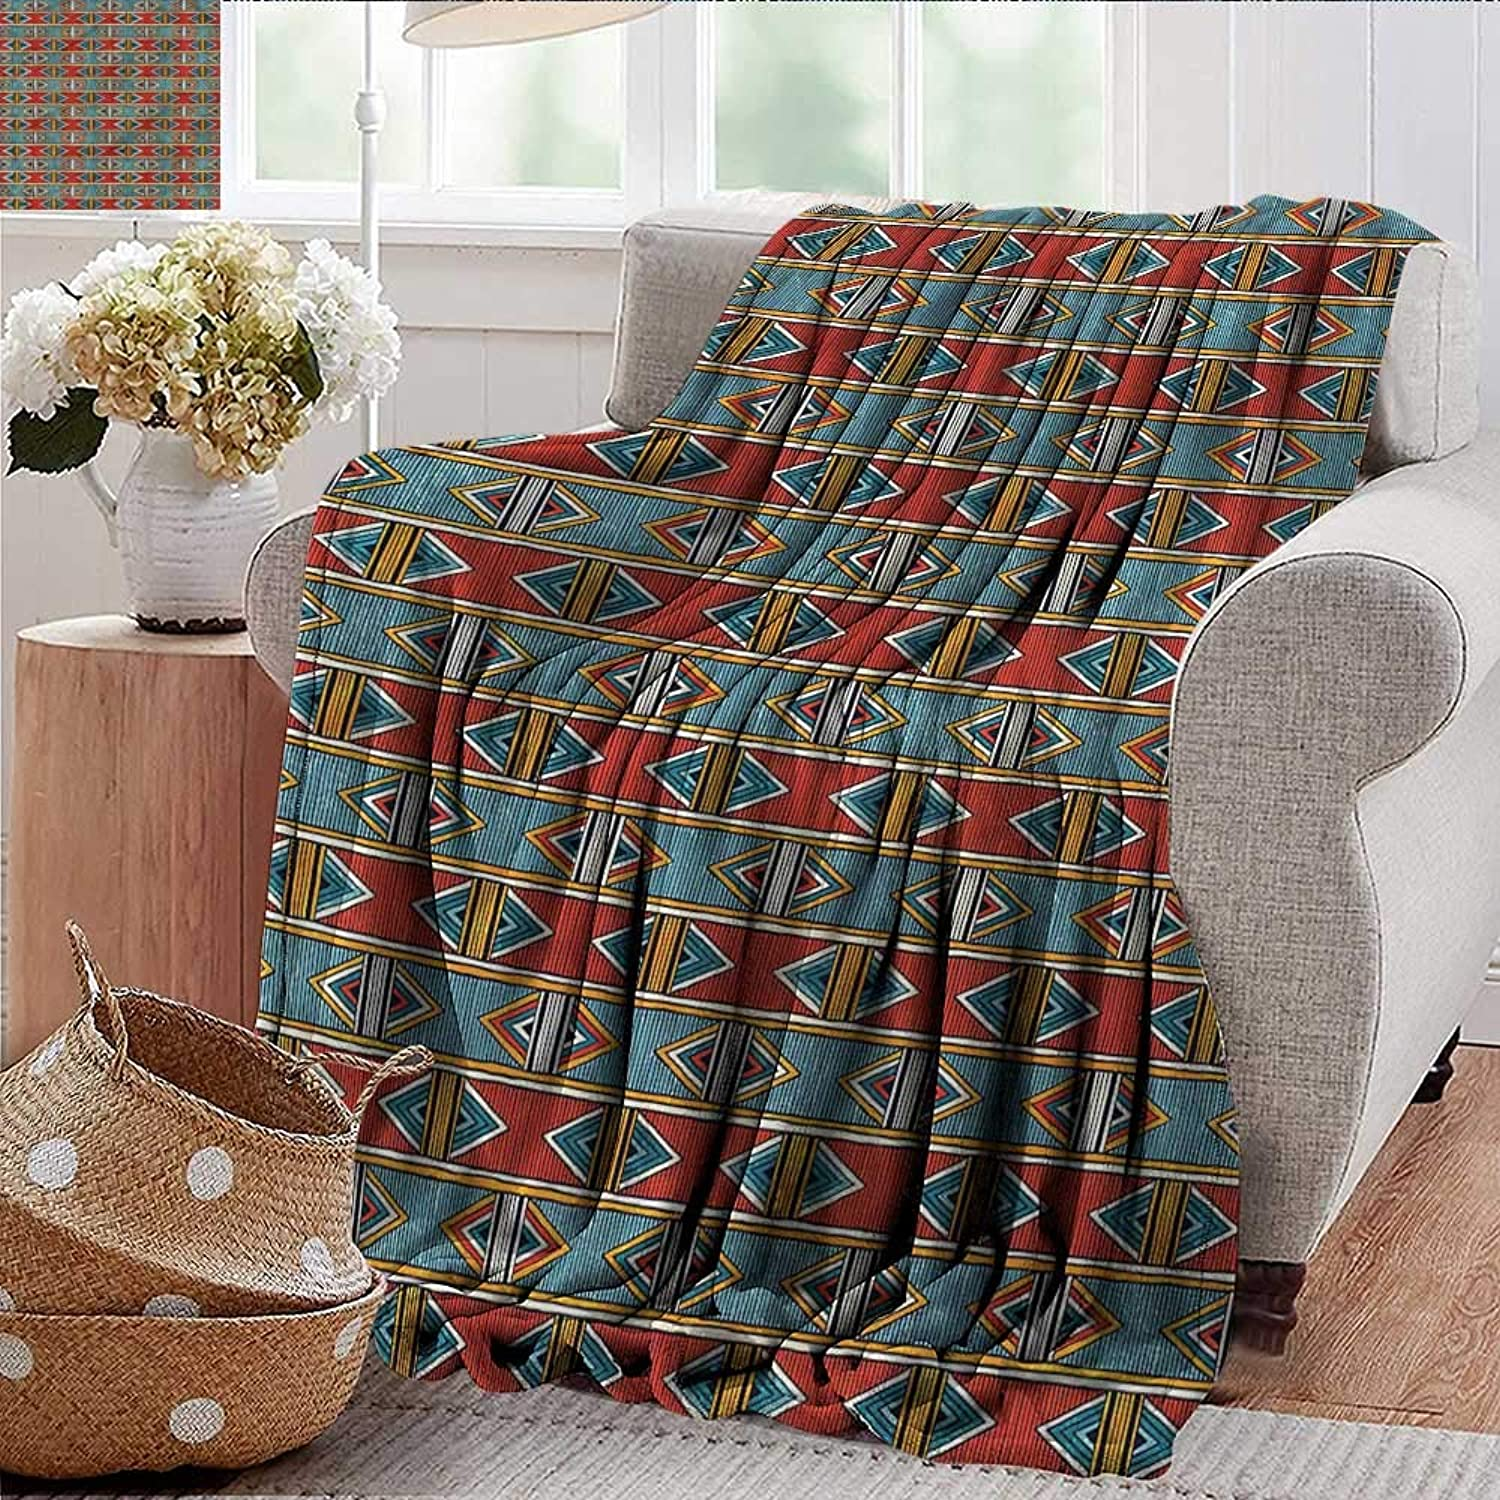 Xaviera Doherty Weighted Blanket for Kids Kente Pattern,Tribal Cultural Soft Summer Cooling Lightweight Bed Blanket 50 x60